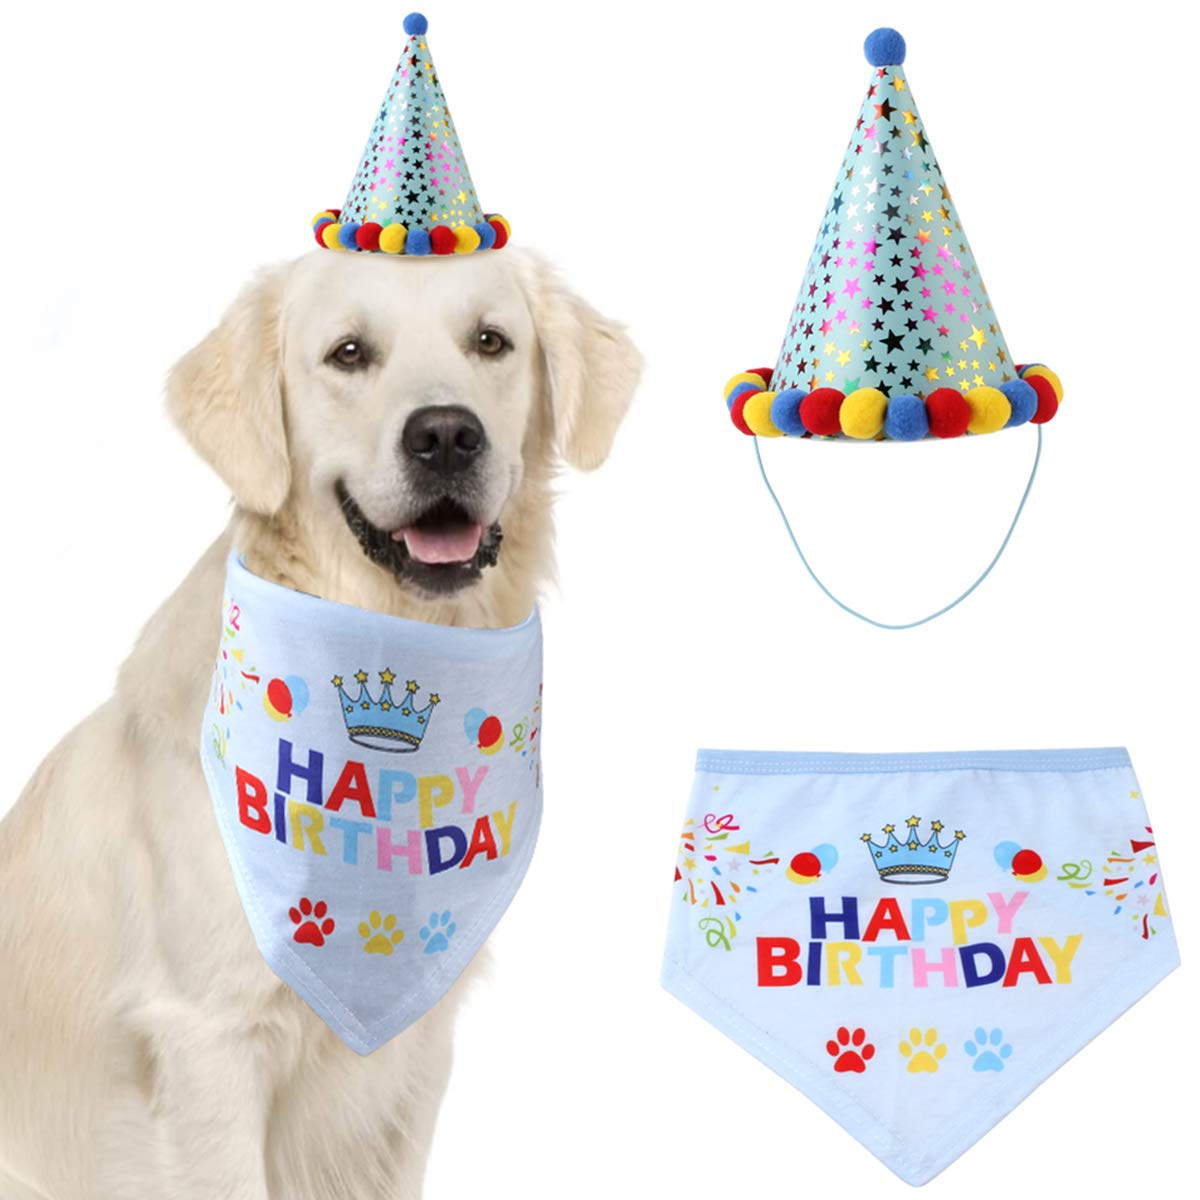 jskjlkl Dog Birthday Bandana Scarf with Party Cone Hat Pet Birthday Party Accessory Decorations Gift Supplies